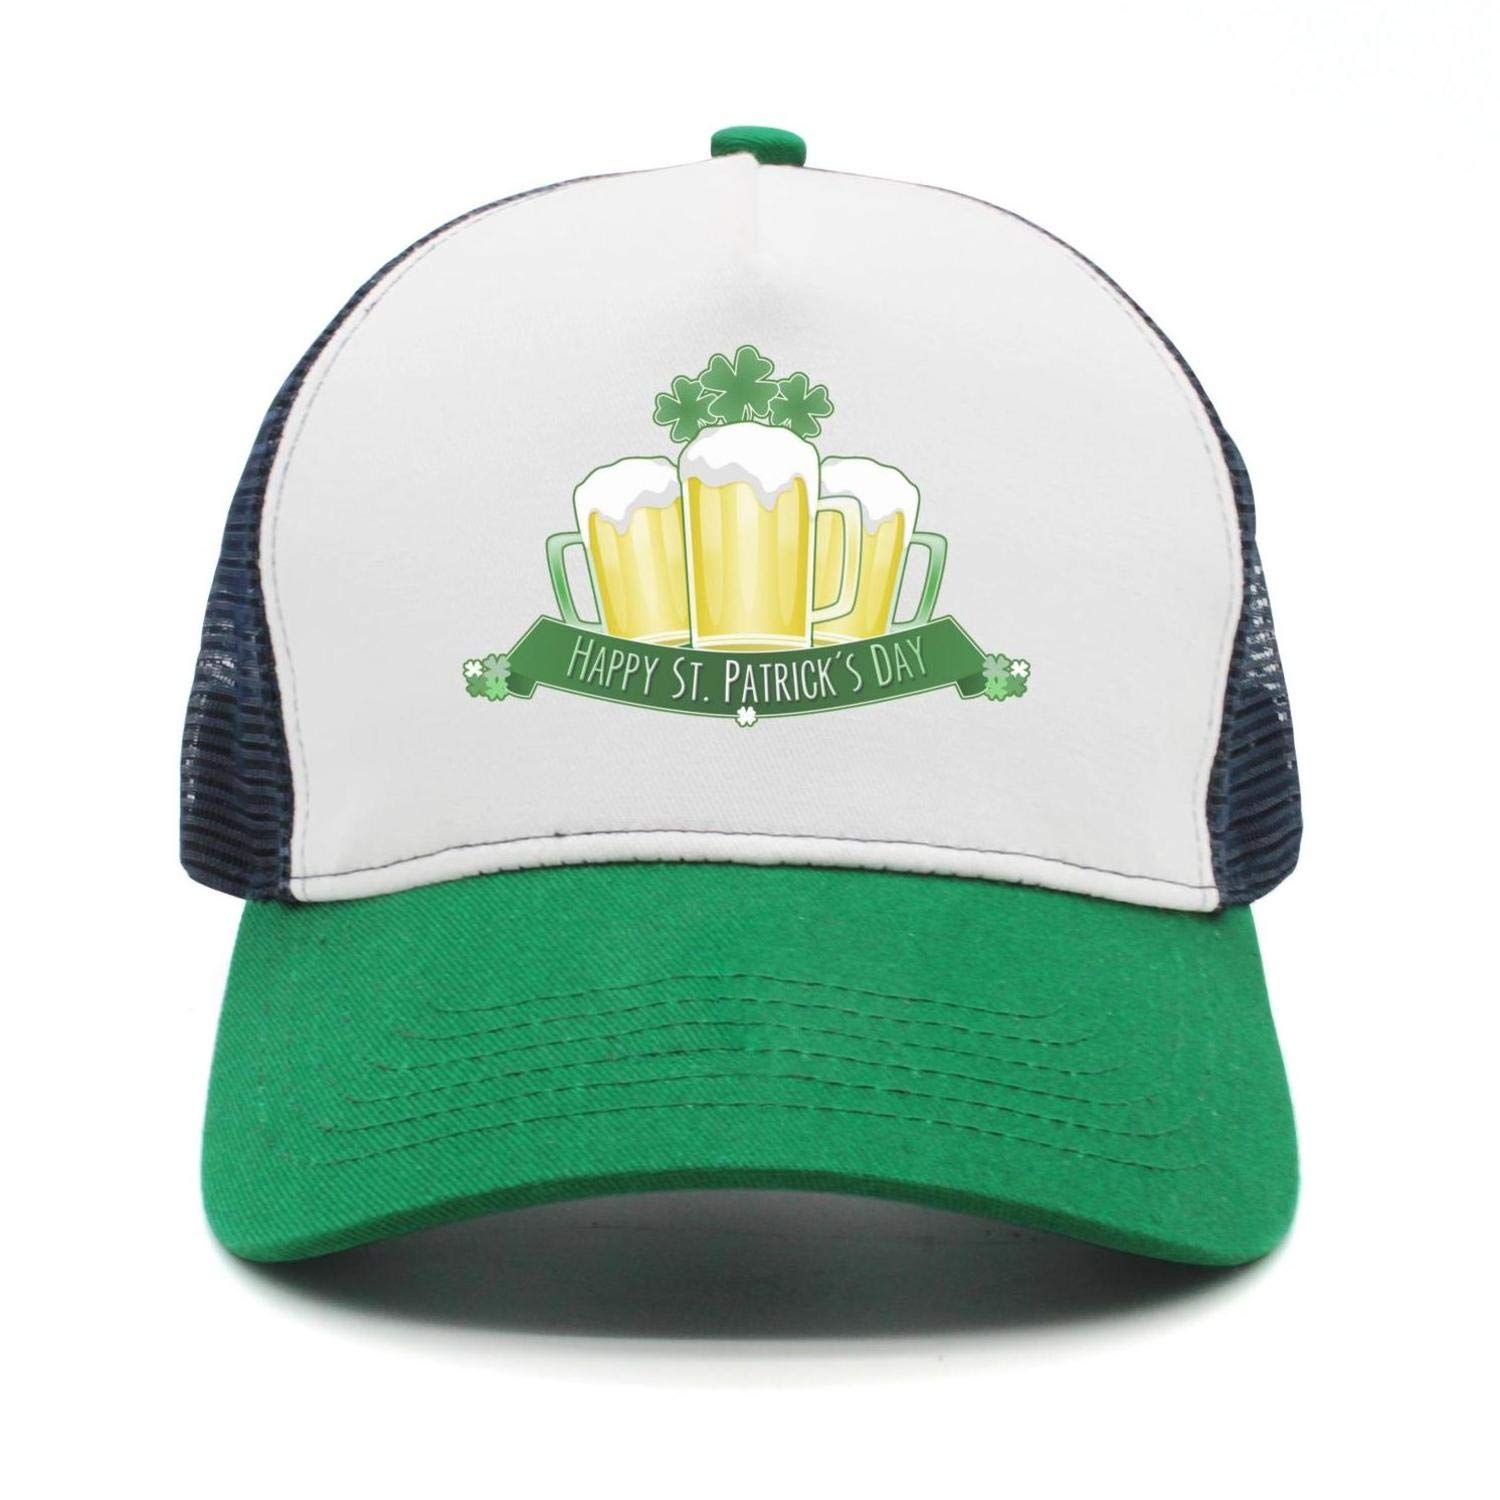 b8c1a43ace6 Amazon.com  Carrolls Irish Gifts Baseball Cap with Embroidered Ireland  Limited Edition Print and Shamrock